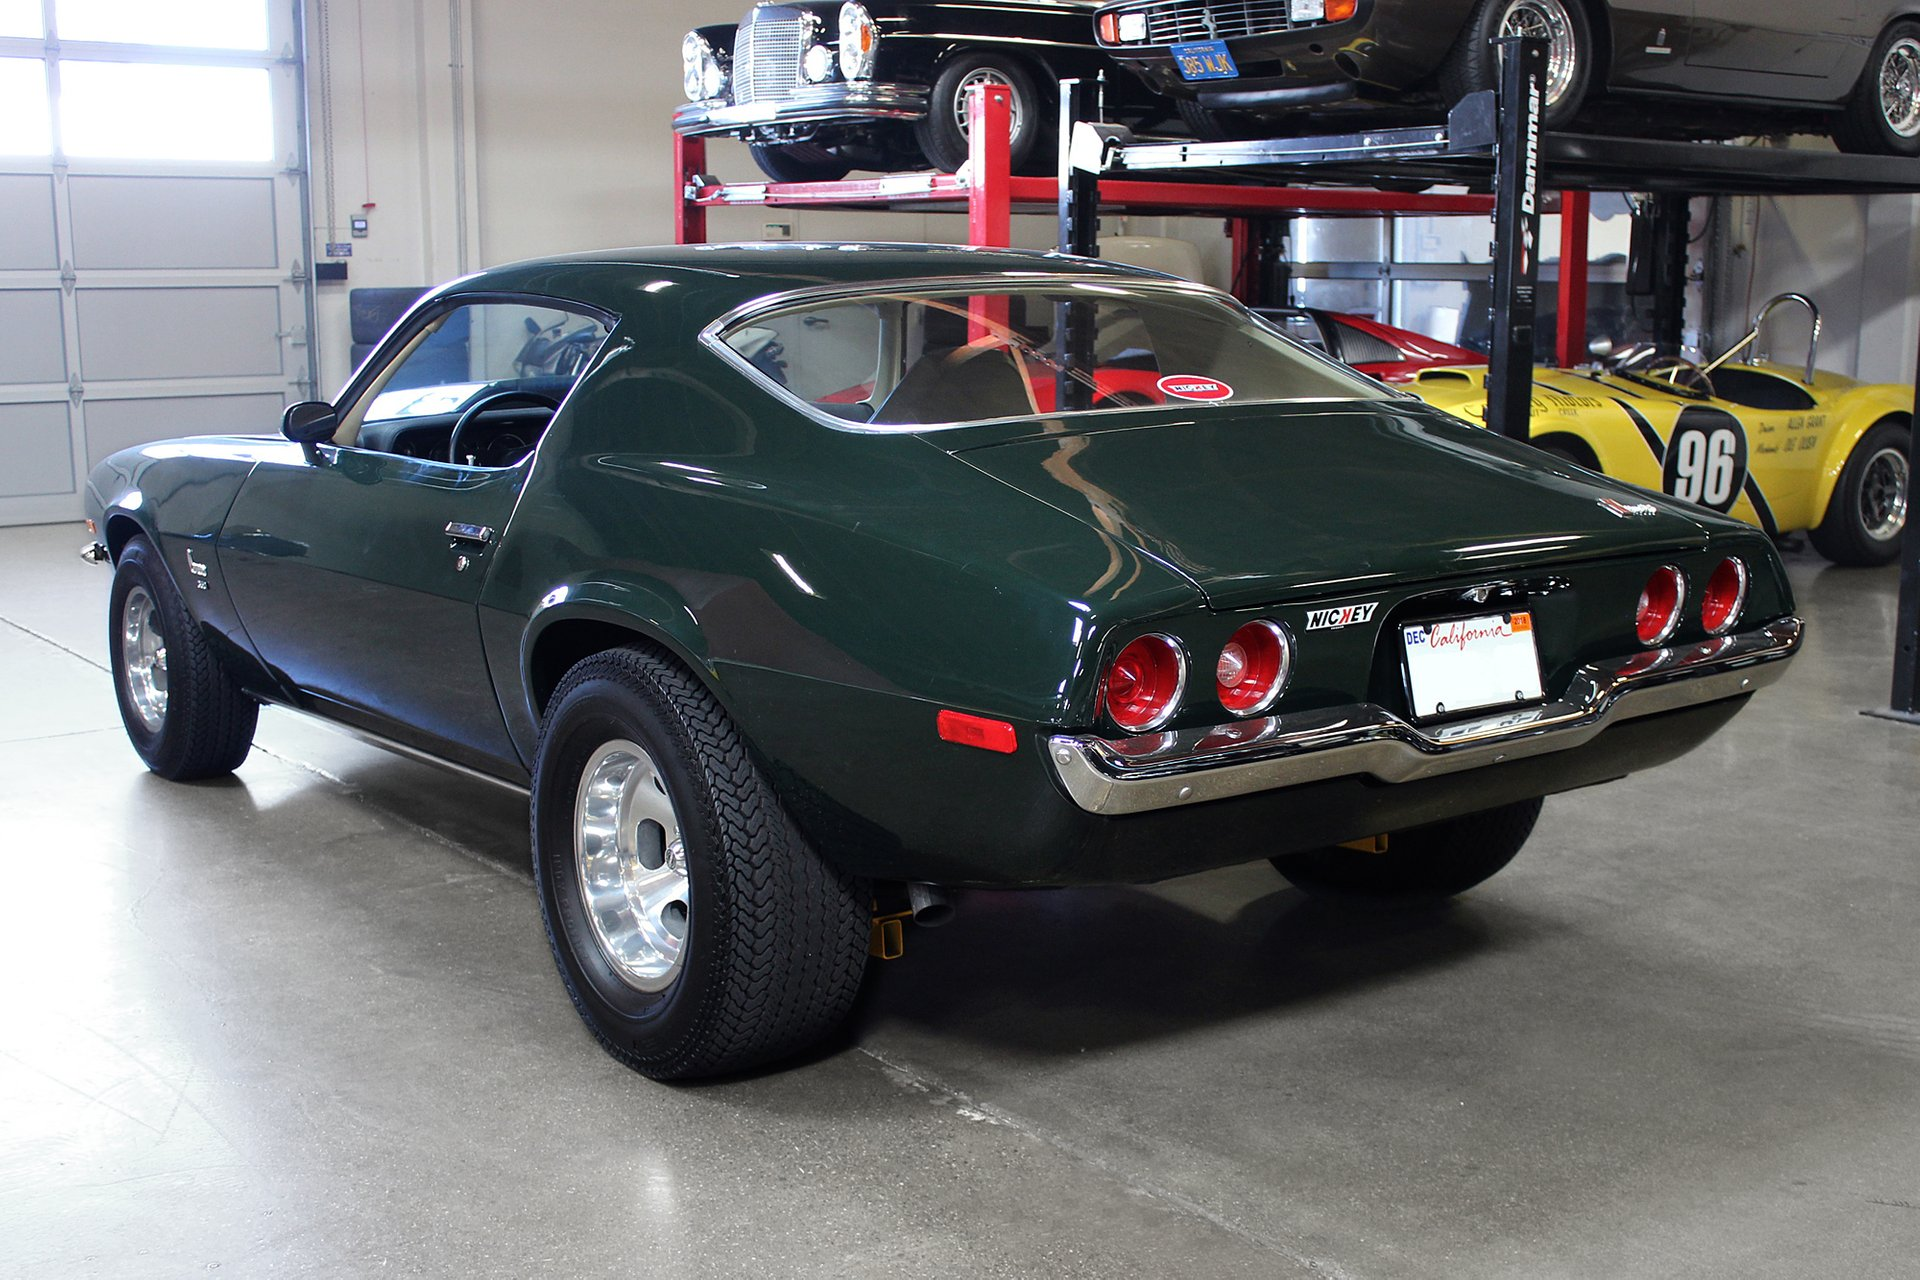 1973 Chevrolet Camaro Nickey Stage III for sale #105915 | MCG